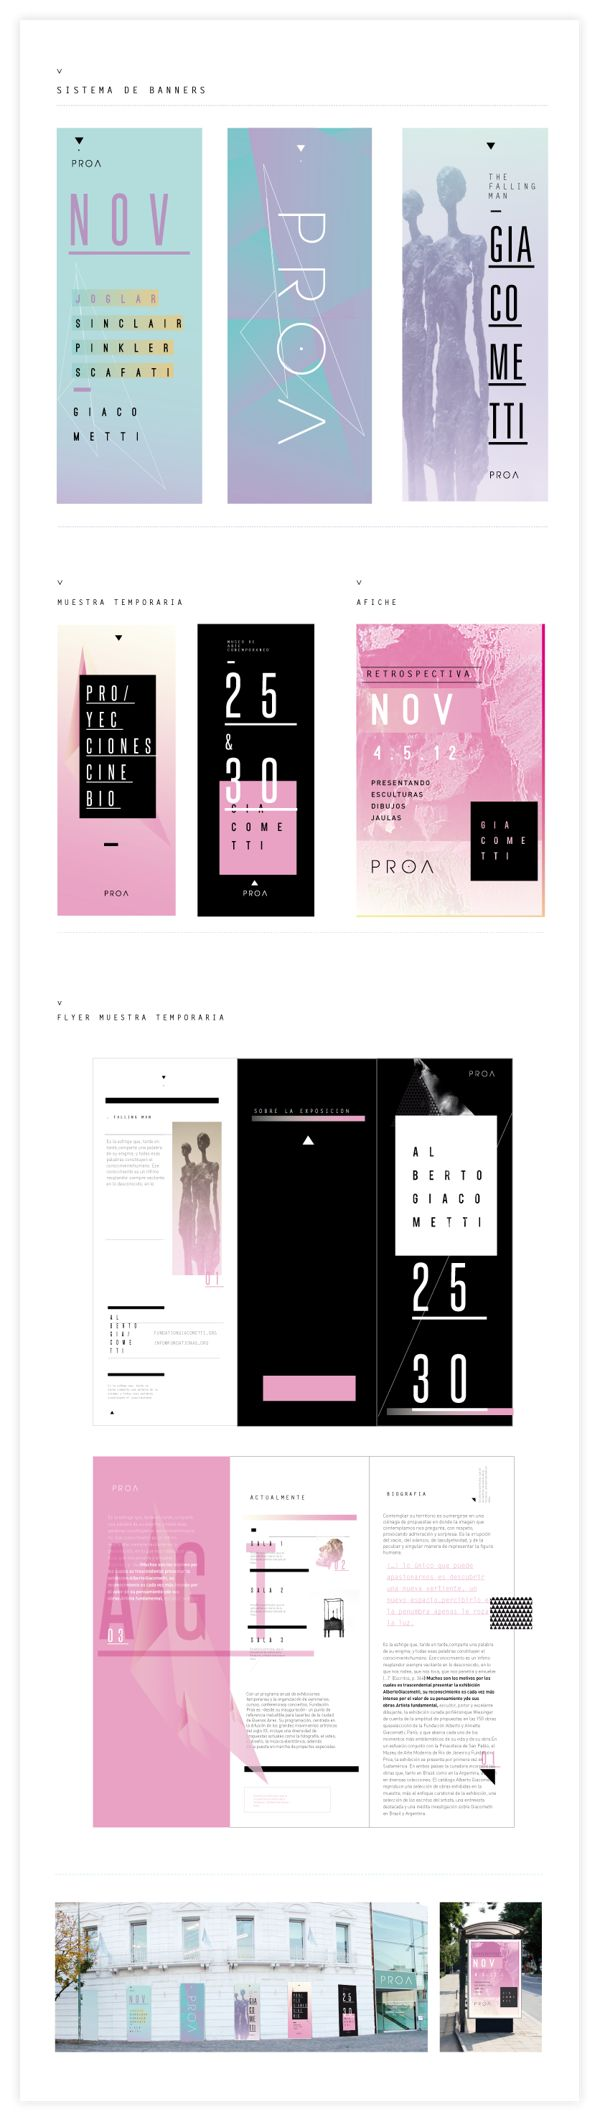 FUNDACIÓN PROA on Behance